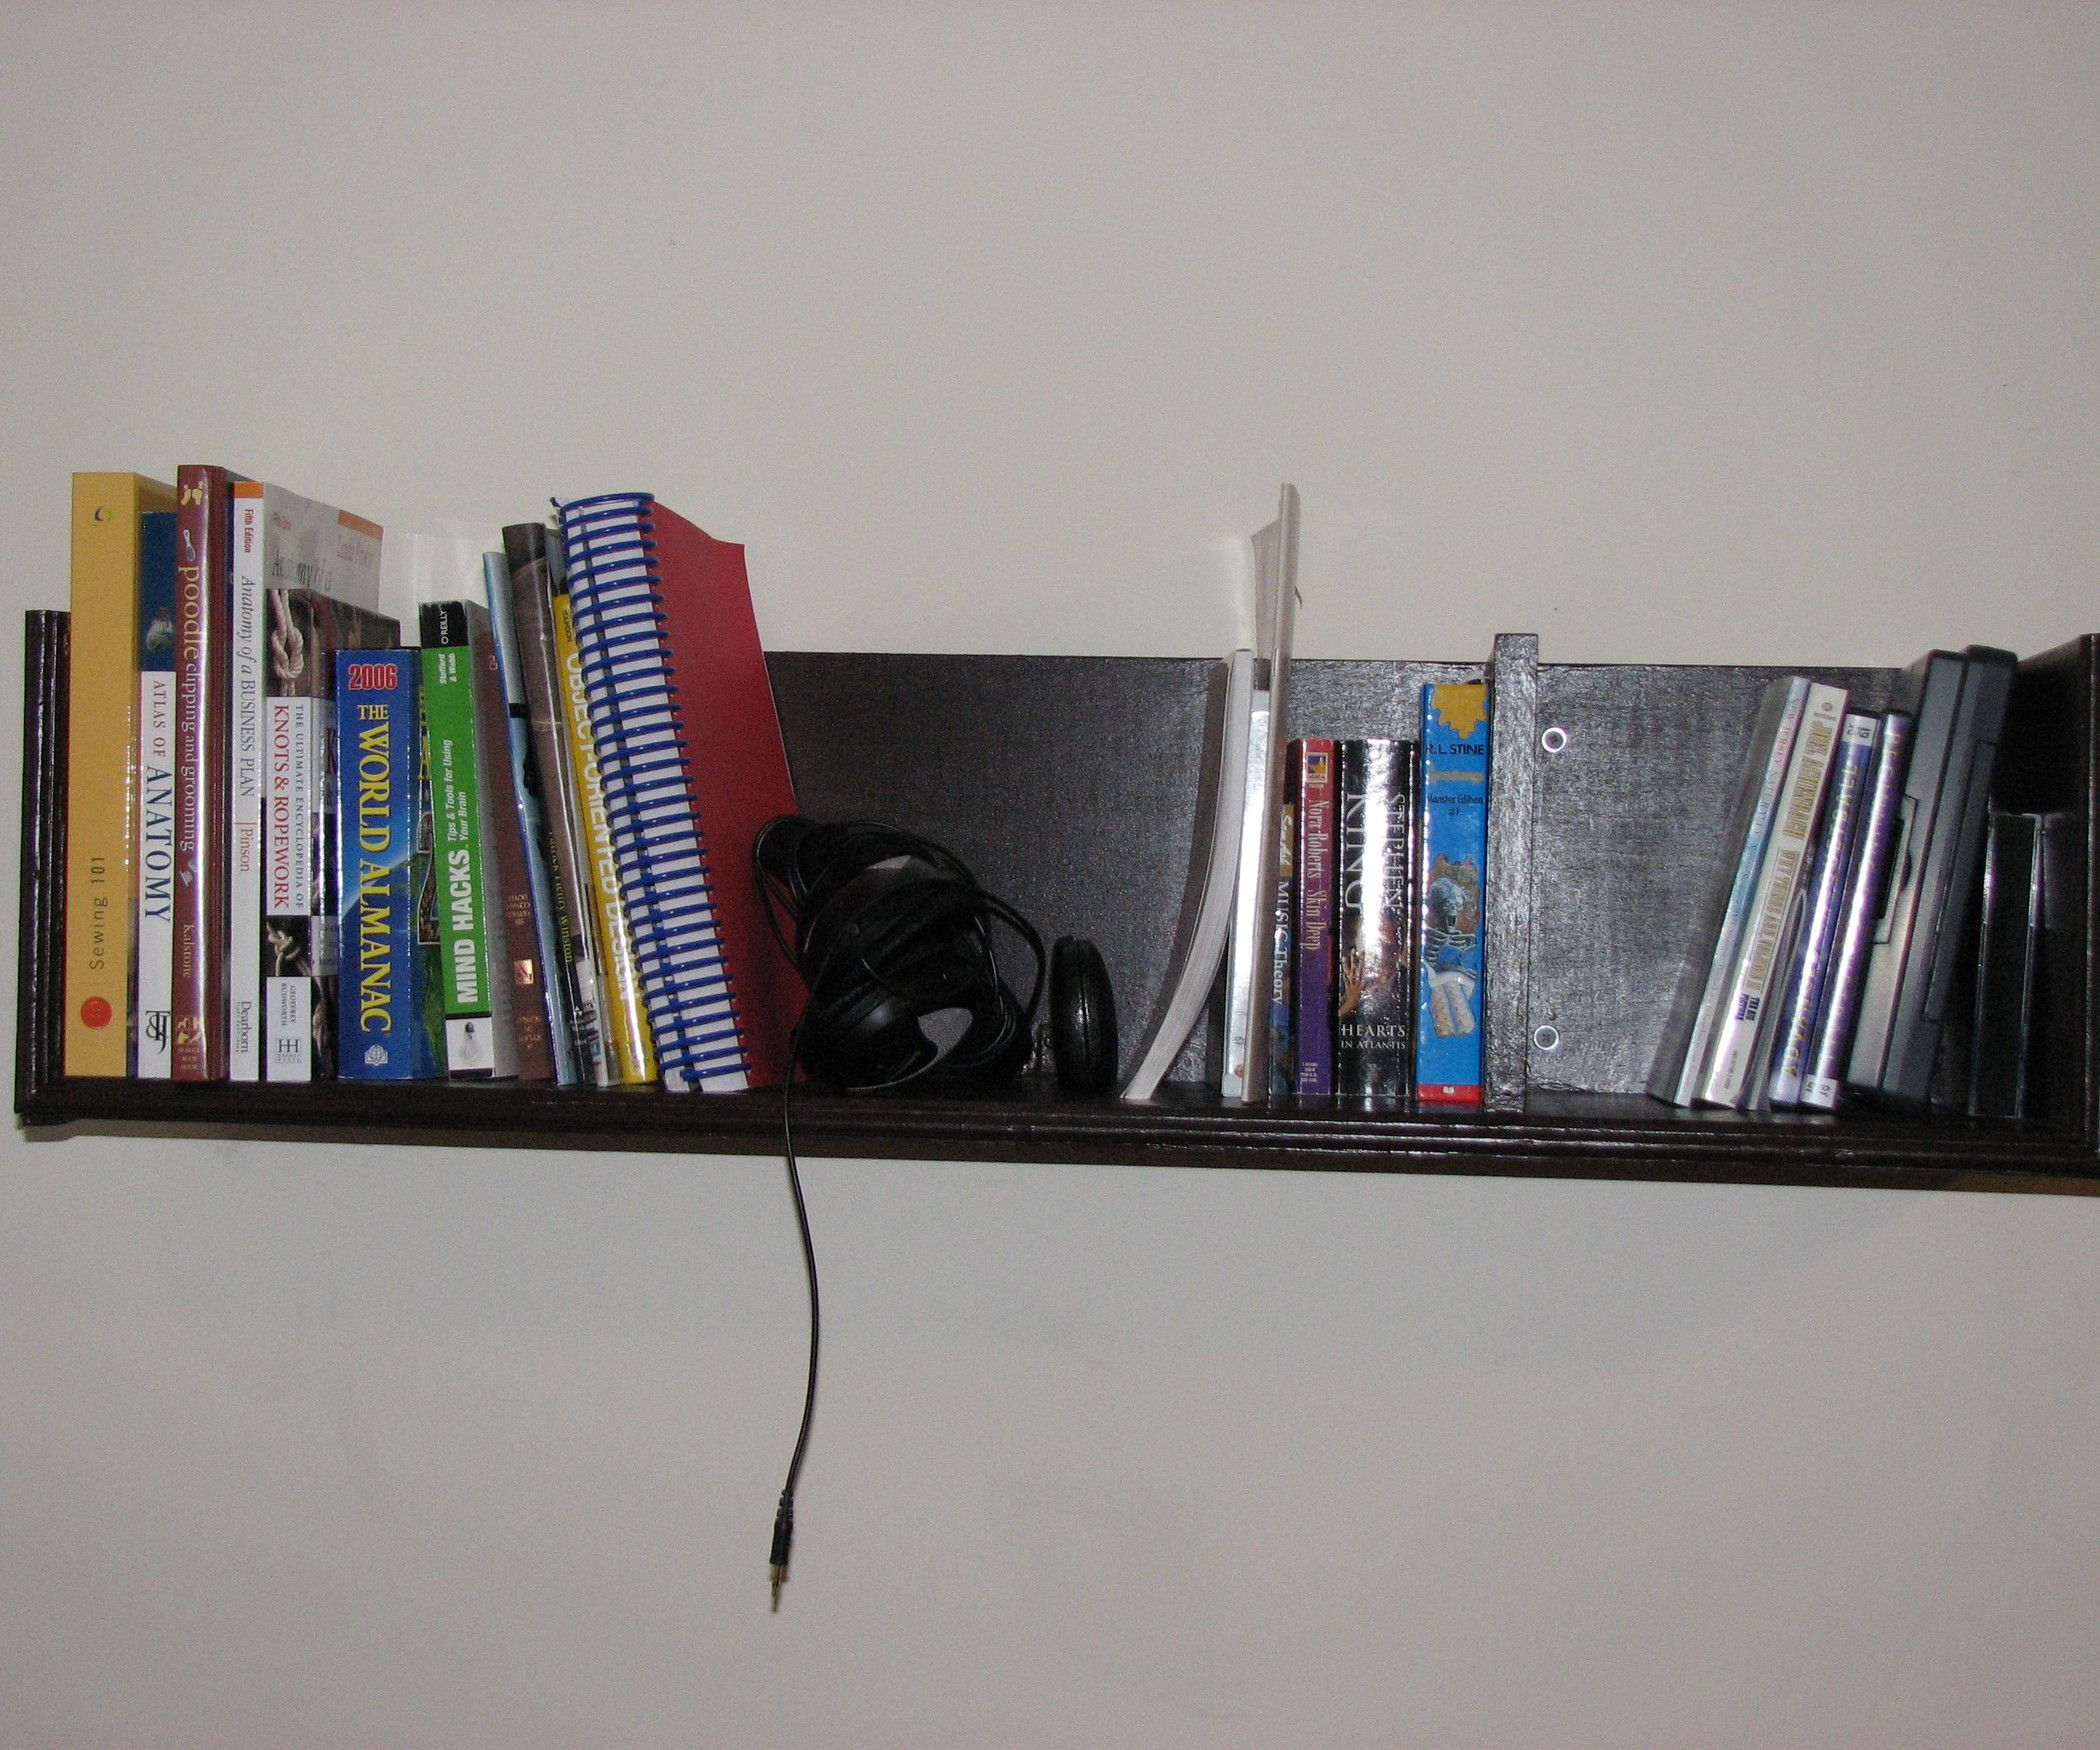 Bon Black Wall Mounted Bookshelves Placed On White Painted Wall For Minimalist  Sitting Room